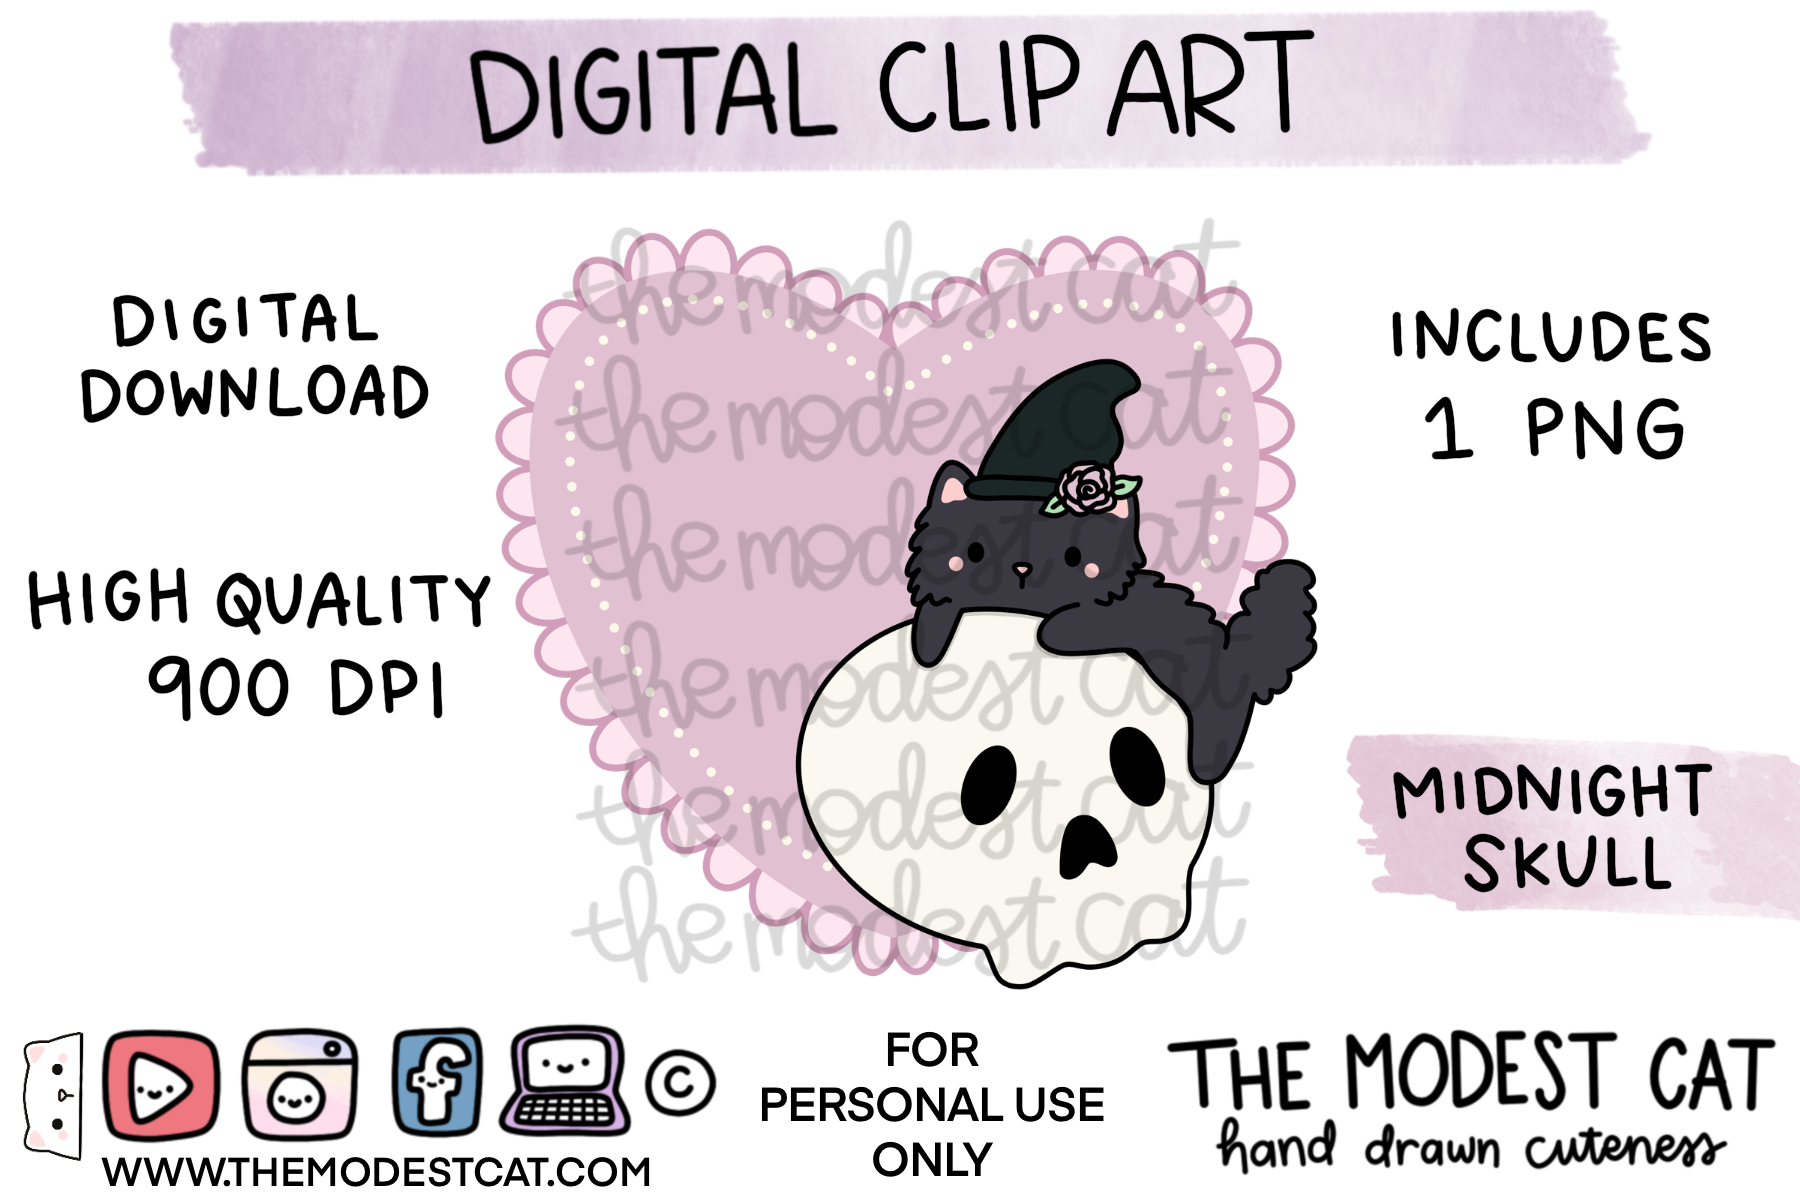 Midnight Skull Doily - Digital Clip Art